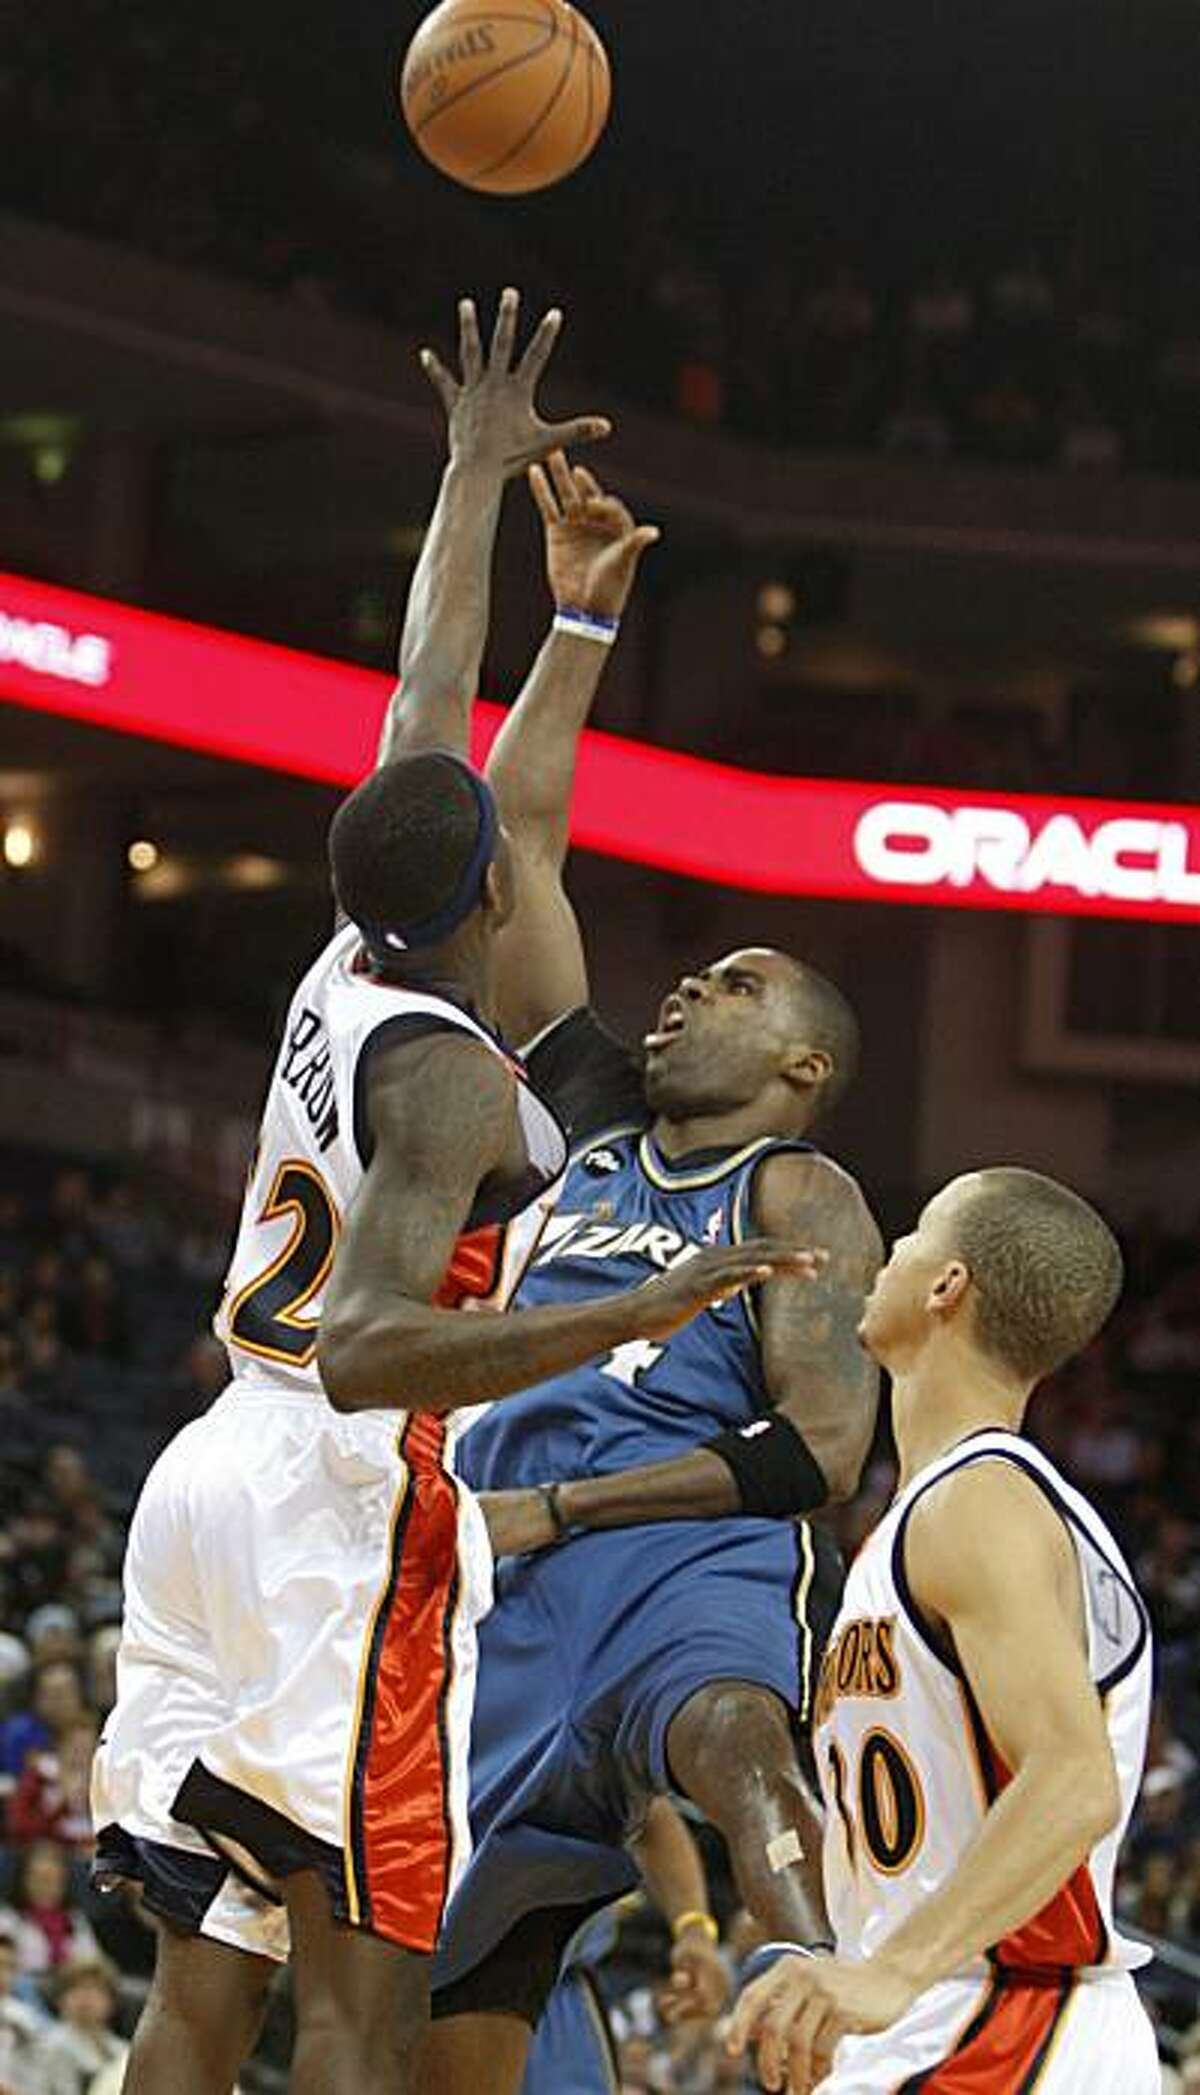 Washington Wizards' Antawn Jamison, center, takes a shot between Golden State Warriors' Anthony Morrow, left, and Stephen Curry during the first half of an NBA basketball game Friday, Dec. 18, 2009, in Oakland, Calif. (AP Photo/Ben Margot)